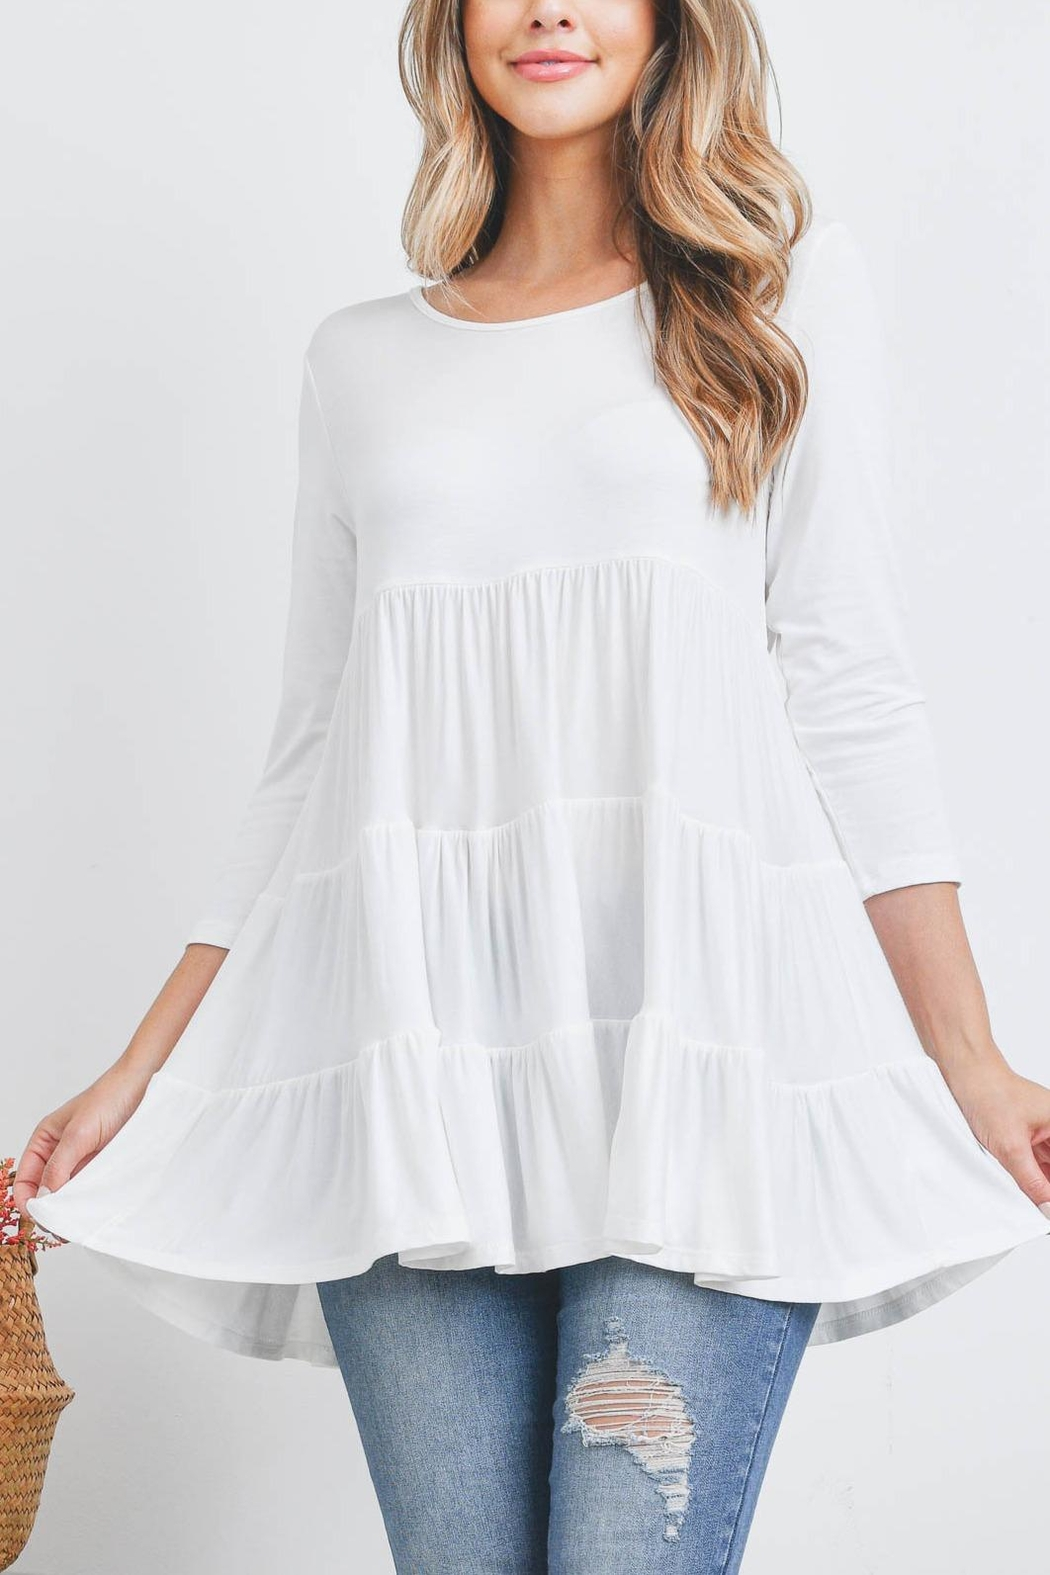 Riah Fashion Quarter-Sleeve-Solid-Tiered-Top - Front Cropped Image